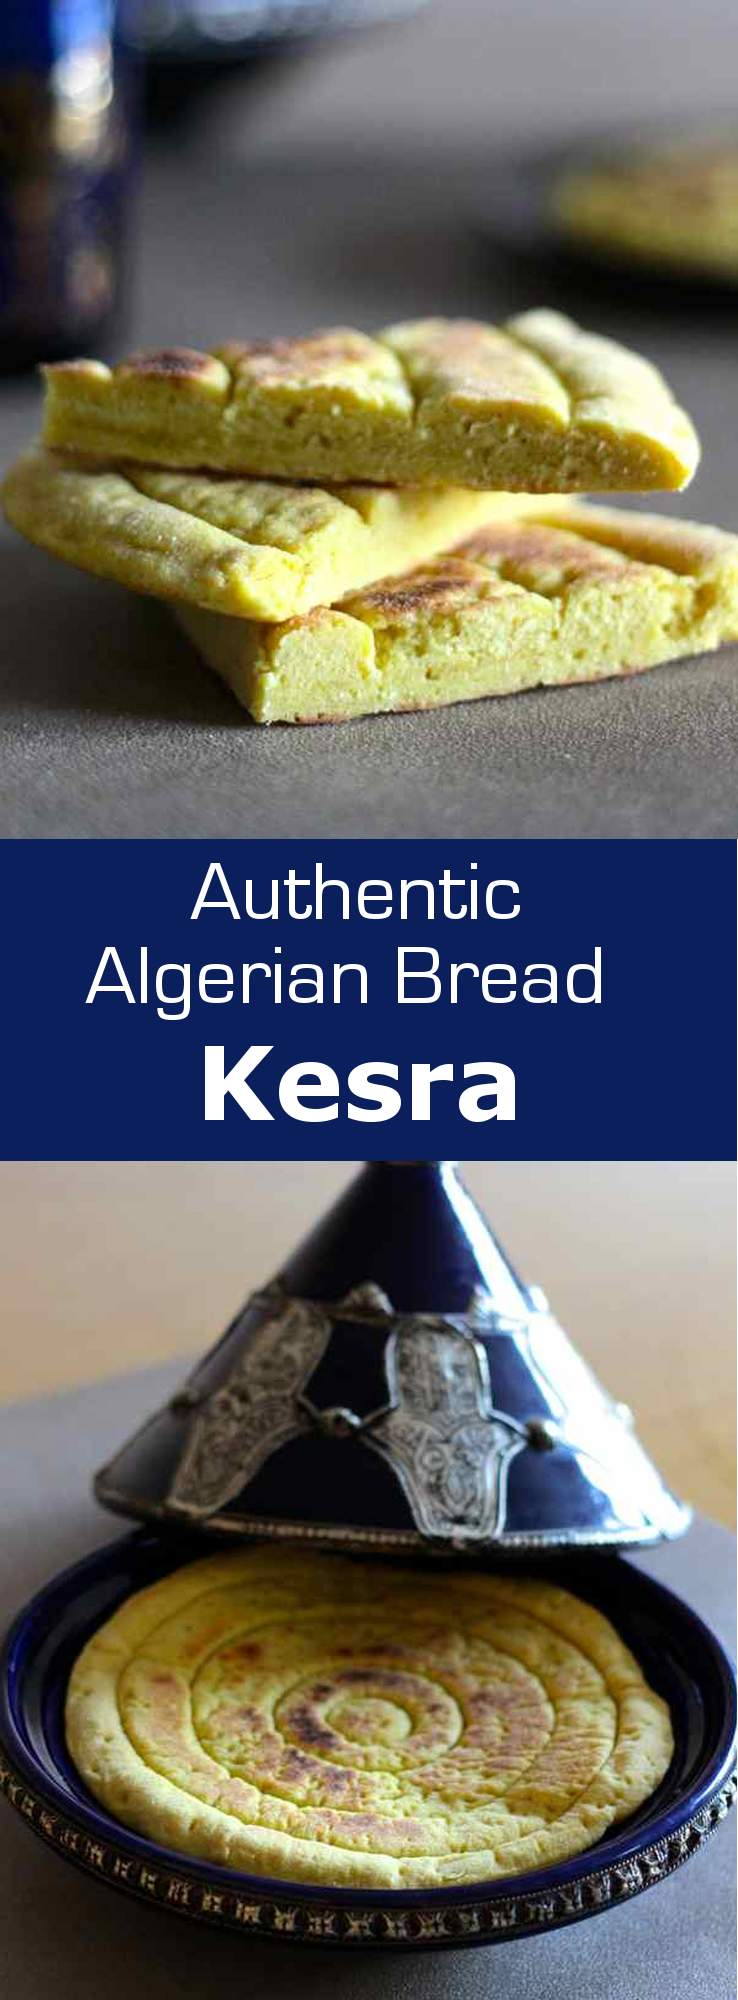 Kesra bread is a traditional flatbread made from Algerian semolina served both in savory and sweet meals. #vegan #vegetarian #bread #algeria #maghreb #northafrica